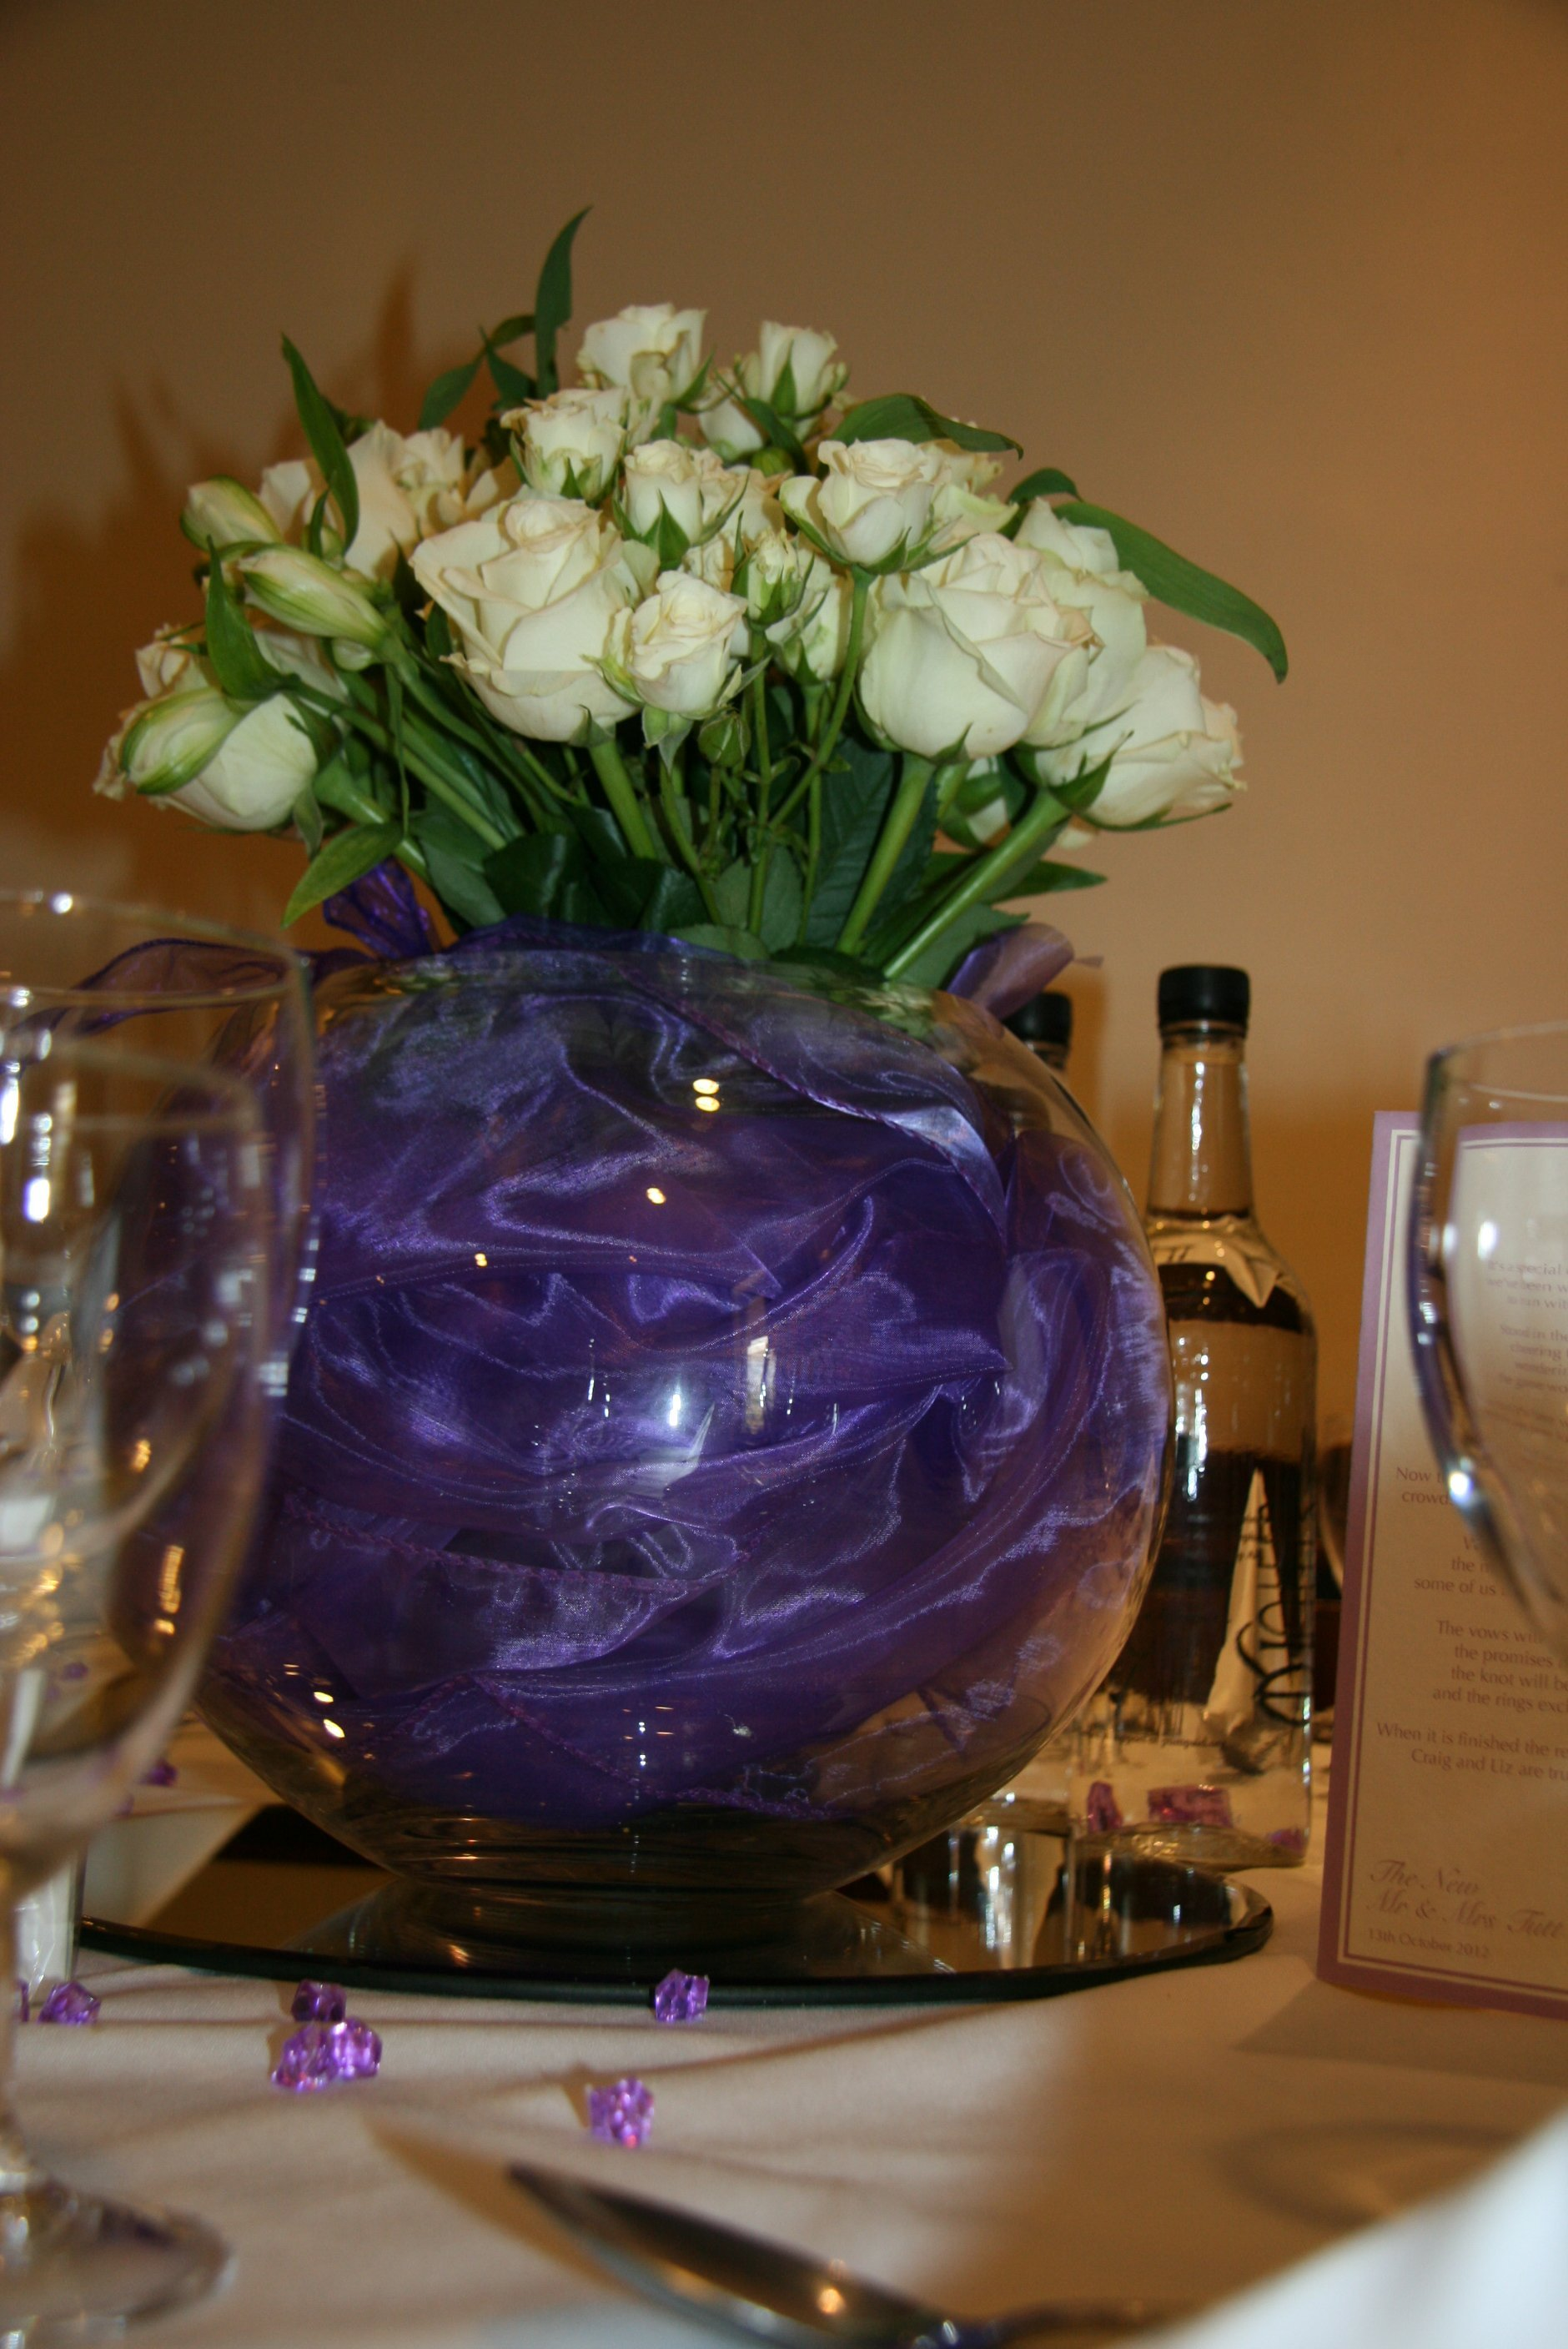 Purple filled rose bowls with roses, Belfry Hotel, Cambourne